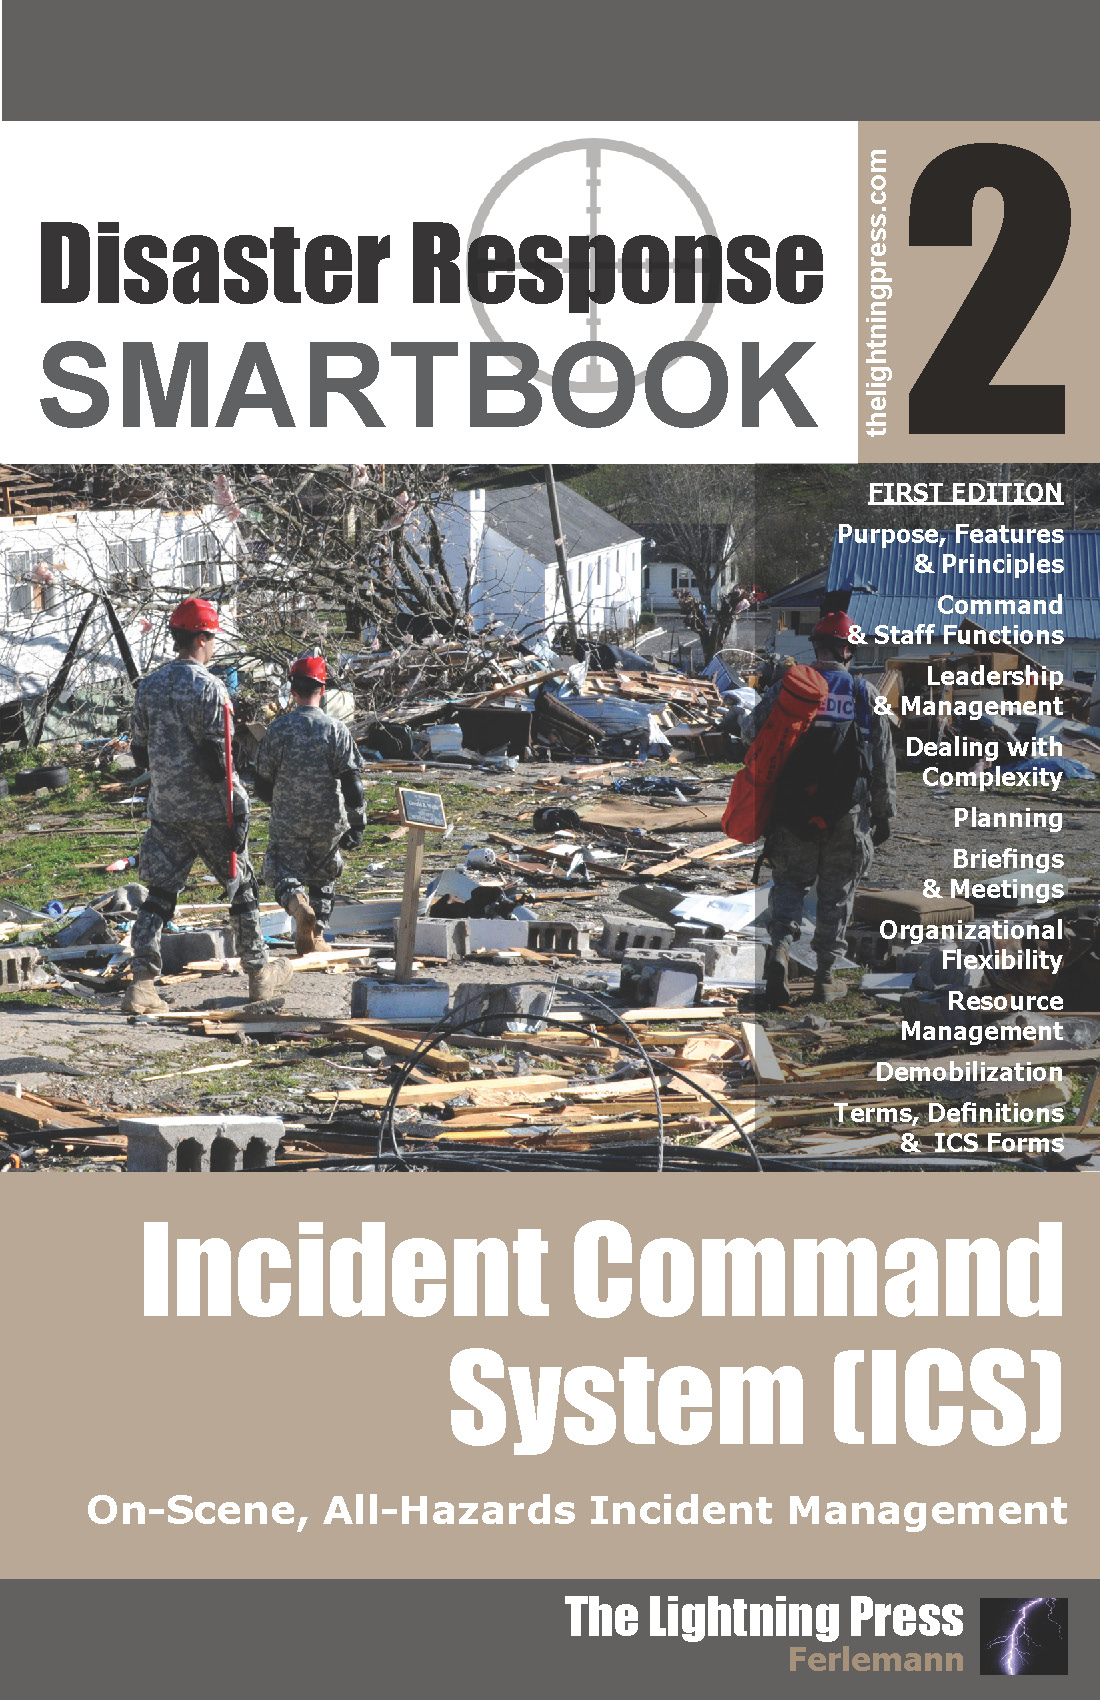 Disaster Response SMARTbook 2 – Incident Command System (ICS)